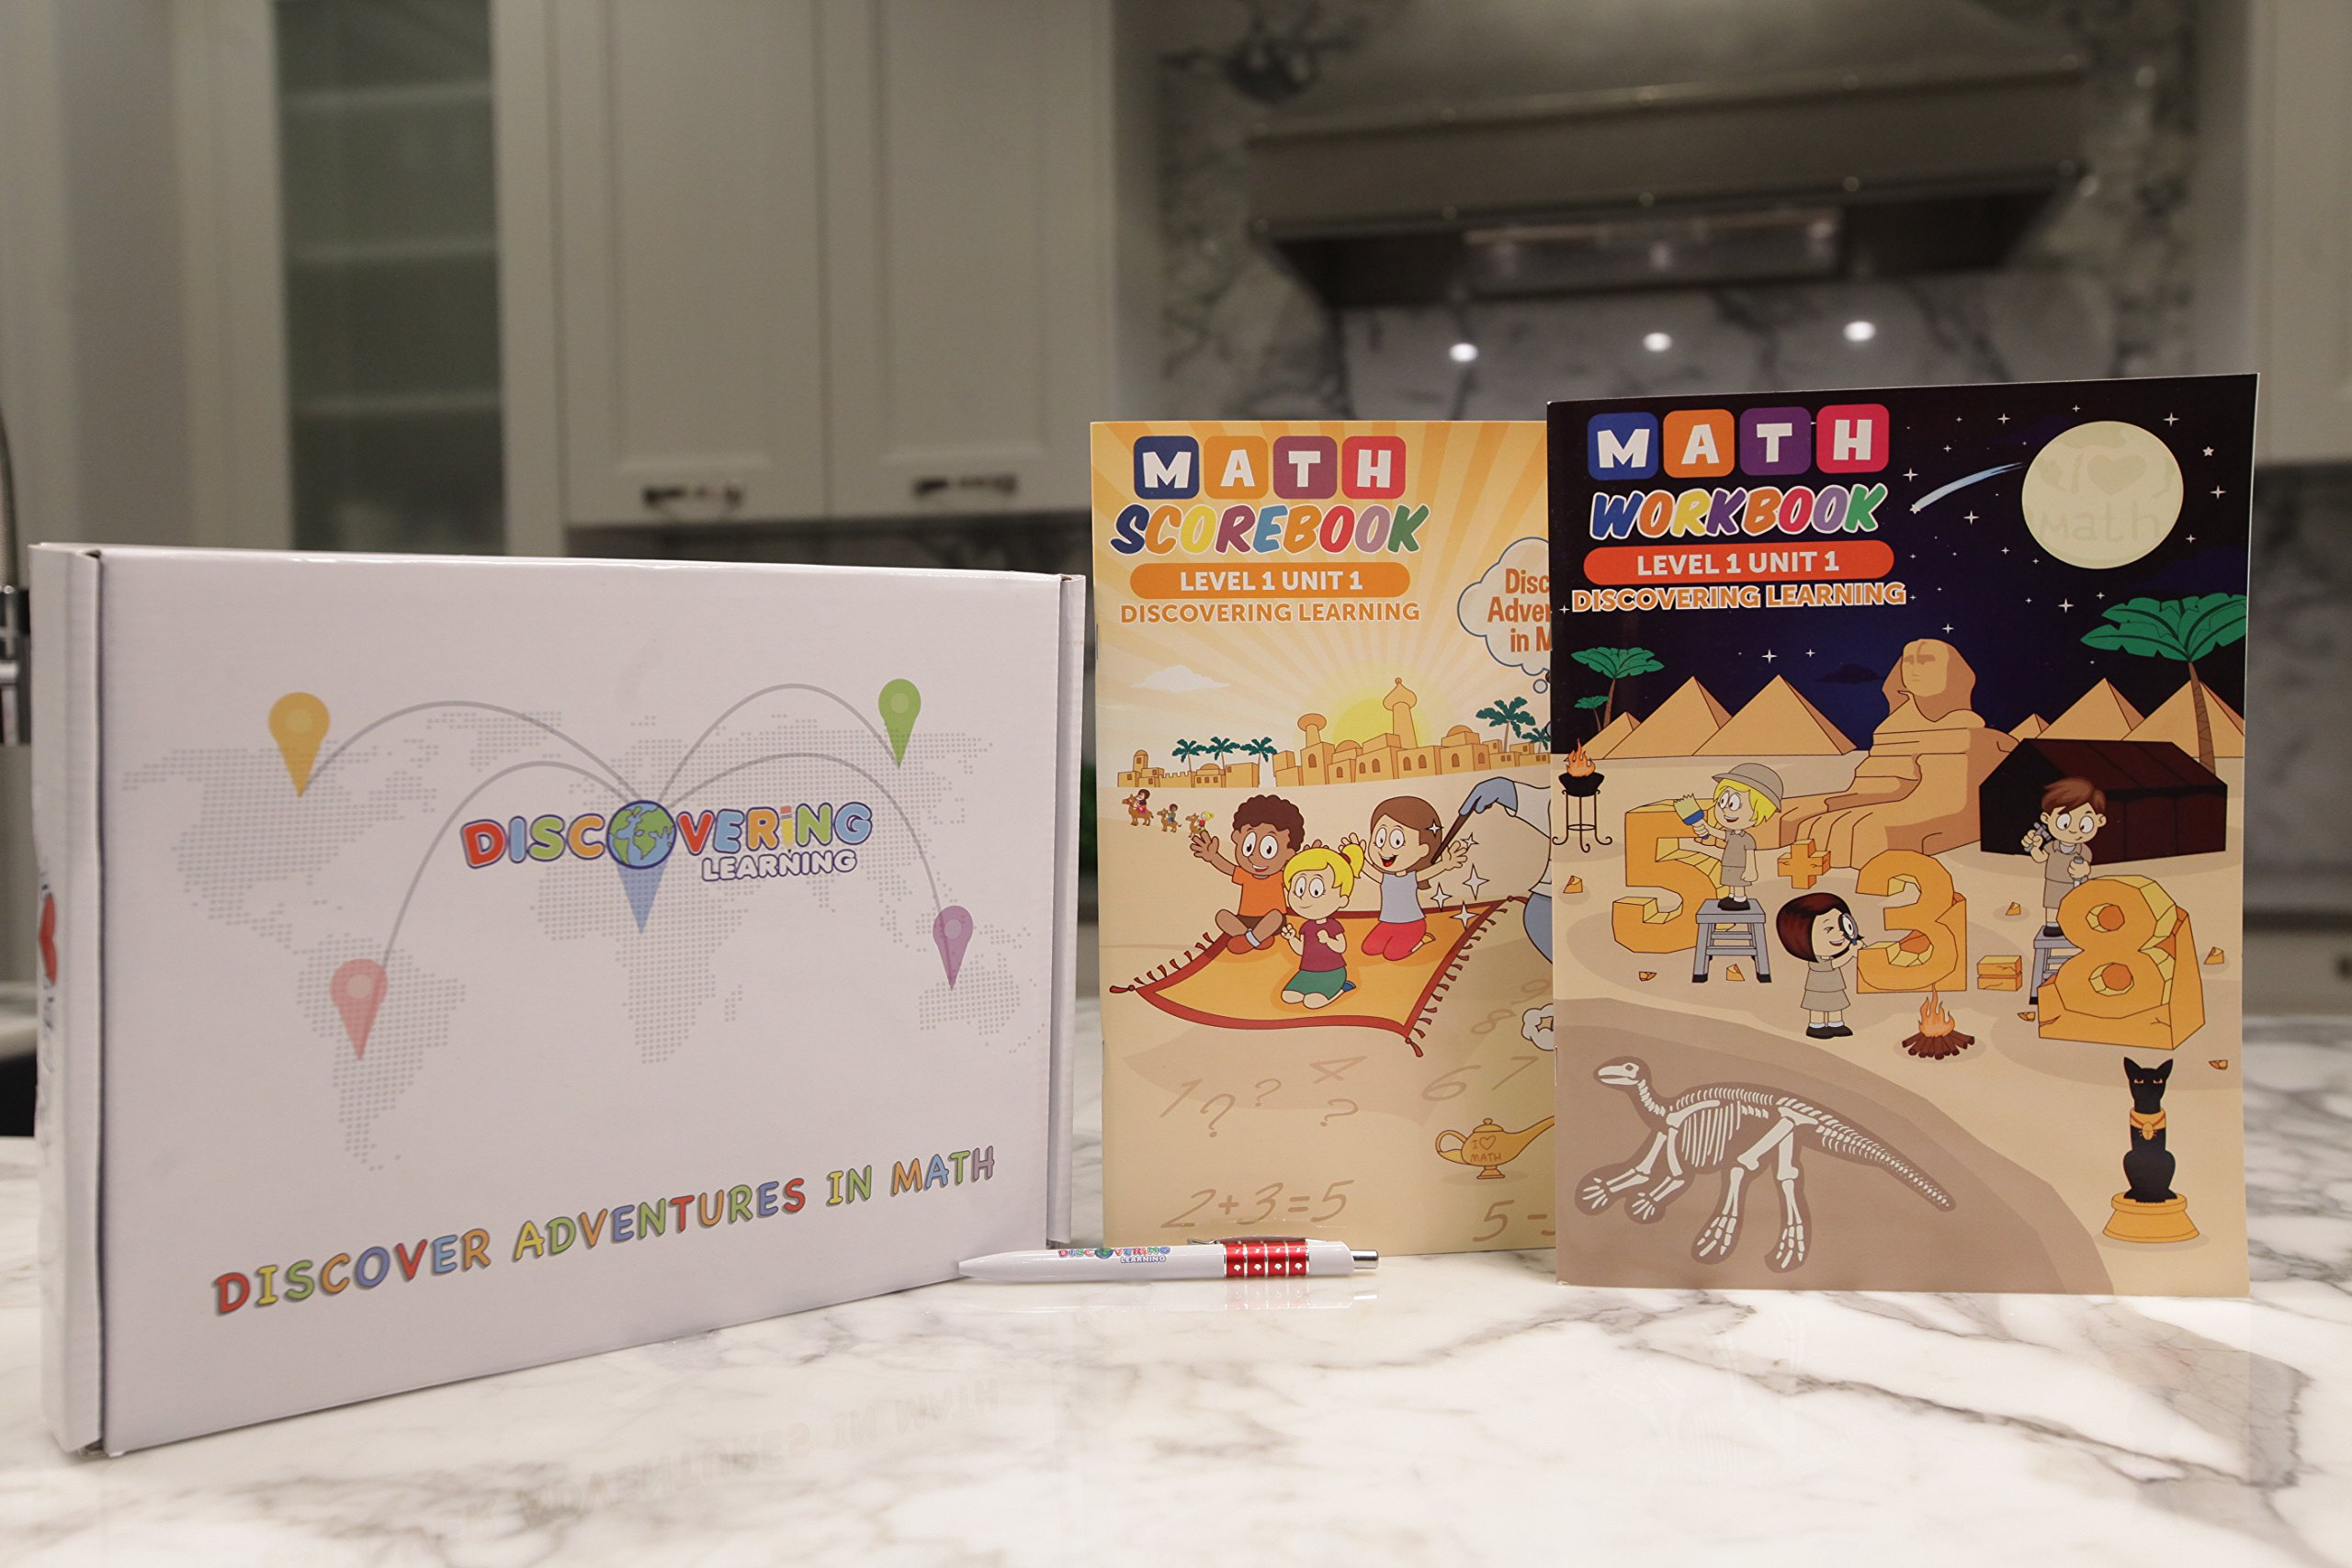 Discovering Learning - Fun MATH Program- Level 1 Unit 1 (ages 4-6) - WORKBOOK and SCORE BOOK by Discovering Learning Inc.